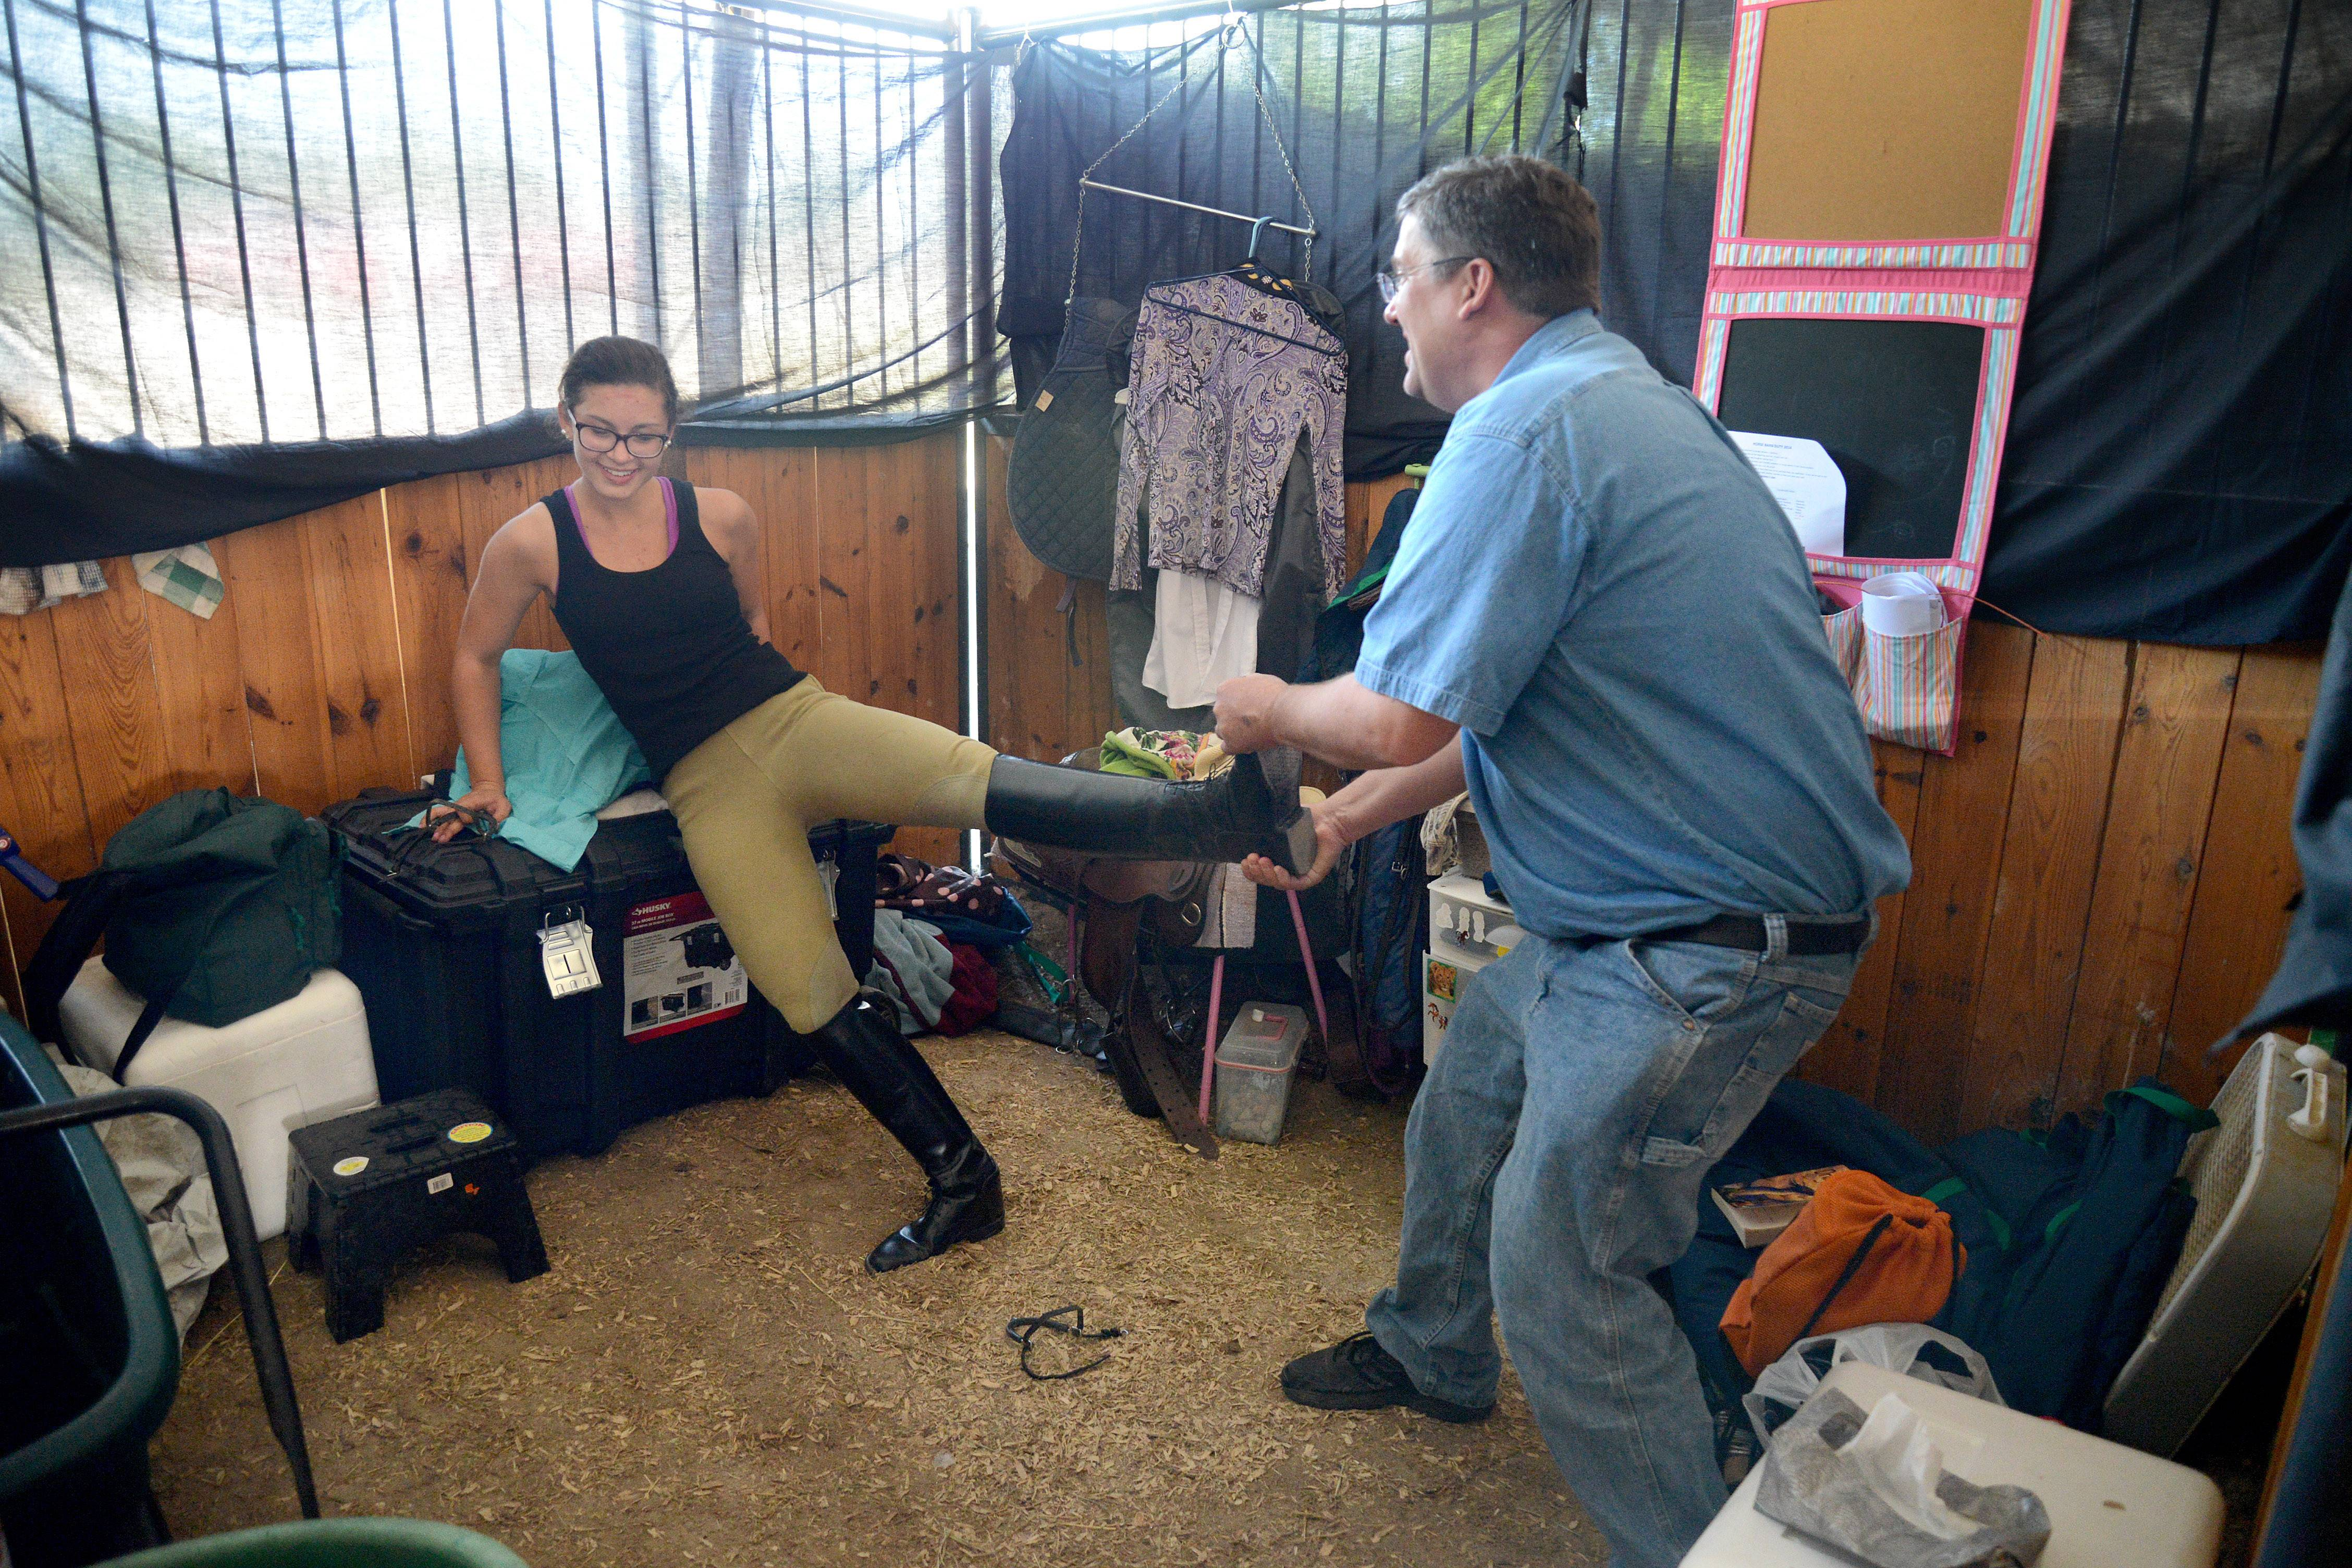 Madde Klinkey, 15, of Wasco gets help from her father, Rob, with getting her boots off after competing at the Kane County Fair.